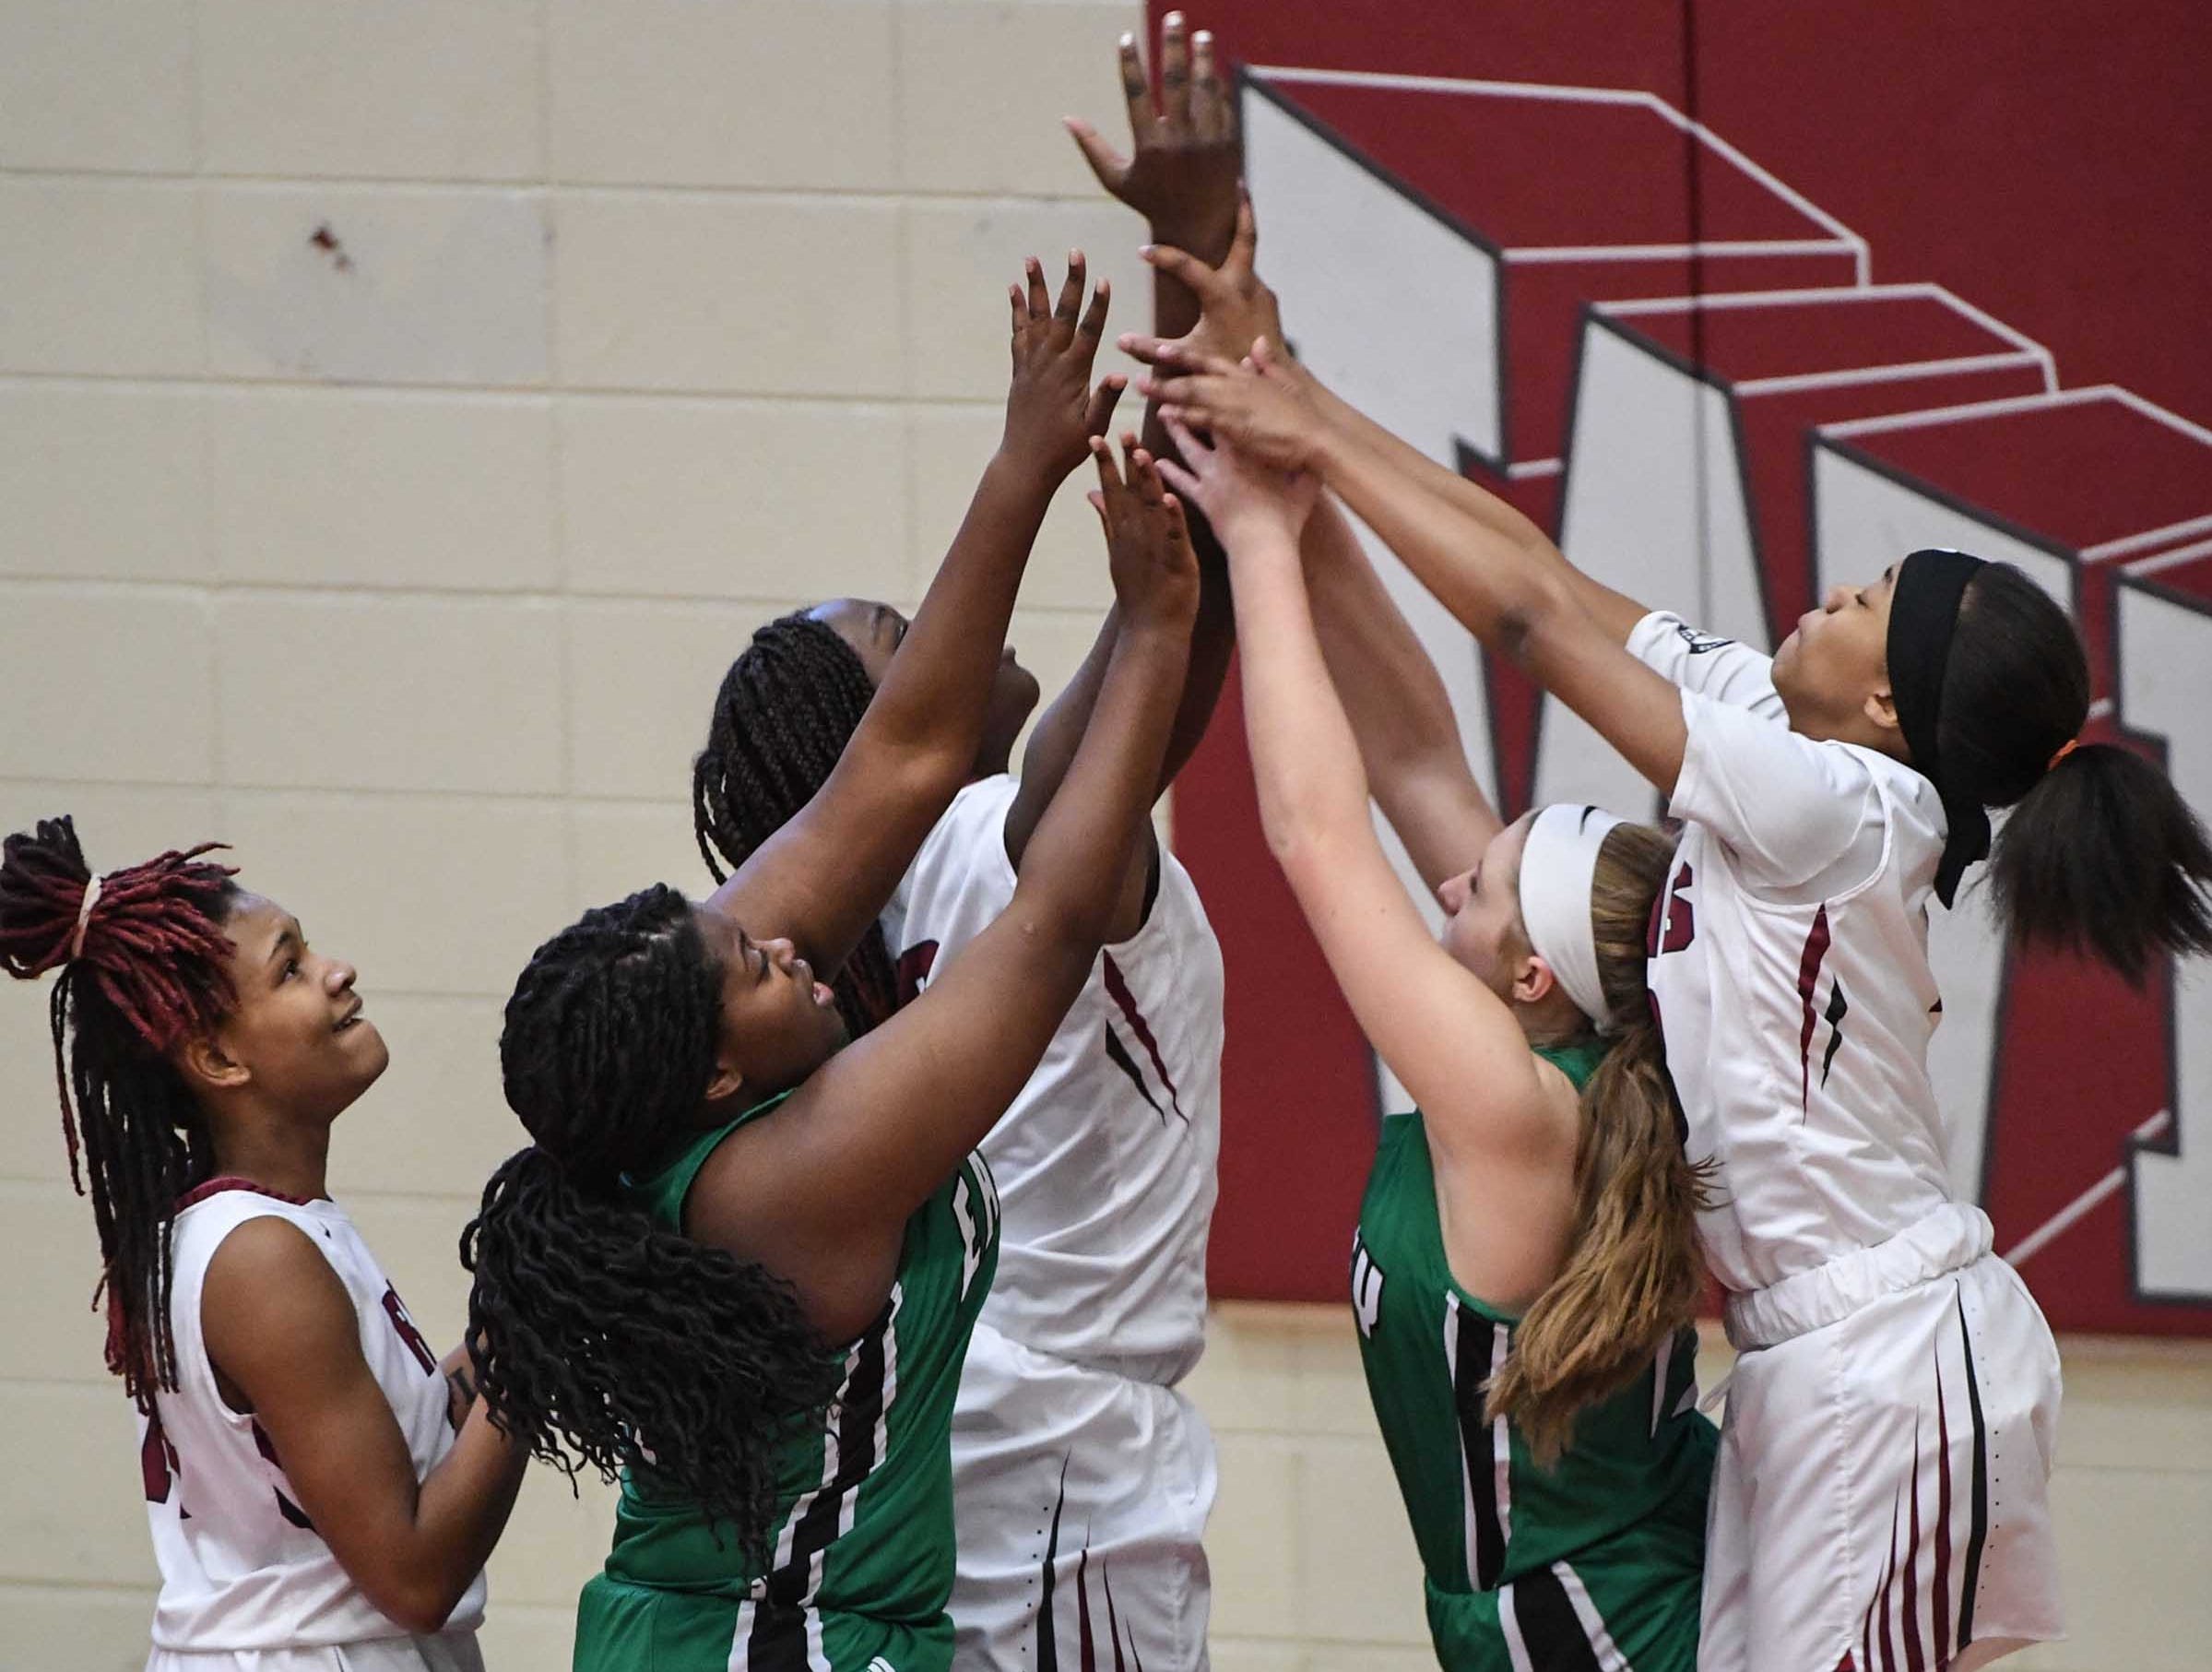 Westside High School and Easley High School reach for a ball during the third quarter at Westside High School in Anderson on Friday.